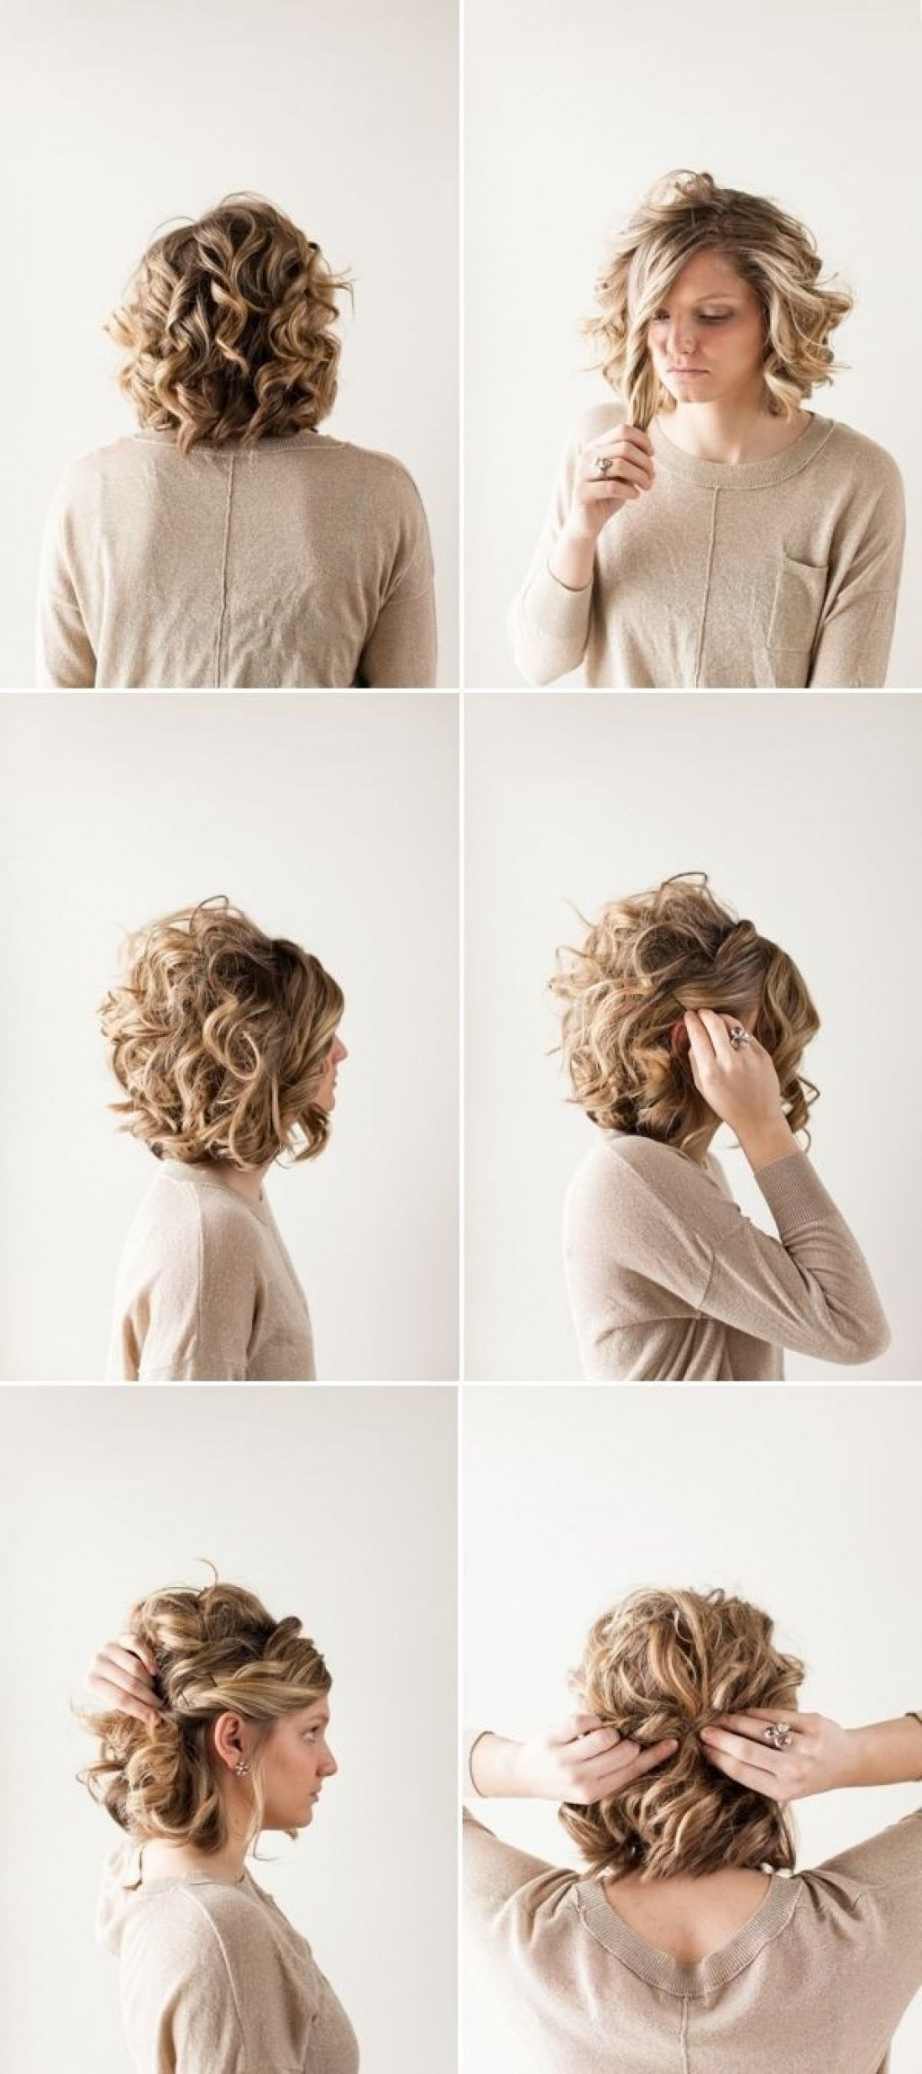 Cute Short Curly Hair Updos Intended For Updo Hairstyles For Short Curly Hair (View 2 of 15)